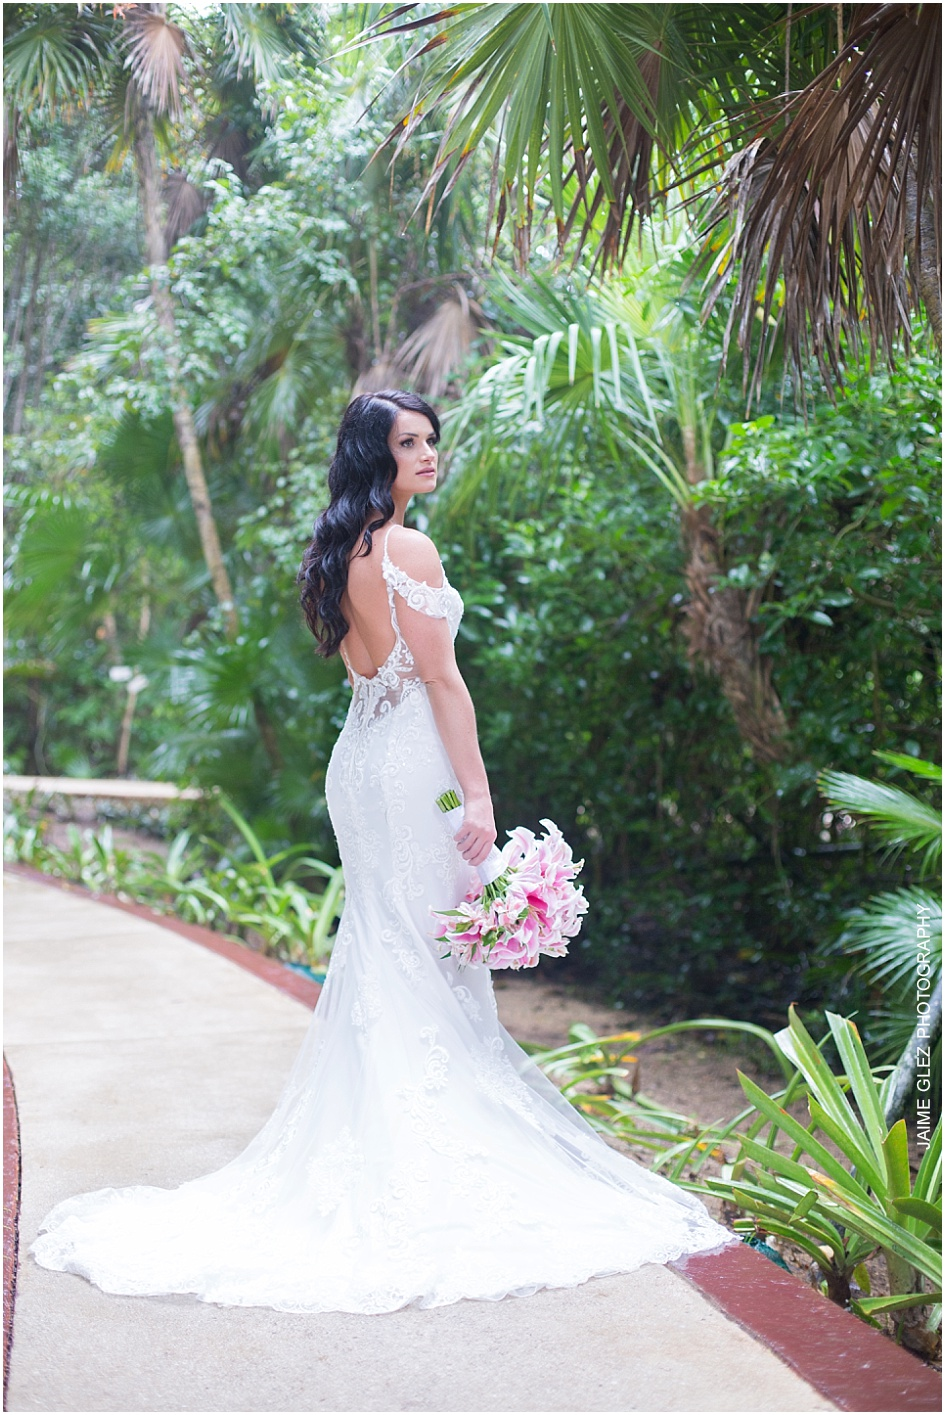 Rachel opted for a wedding dress which displayed soft detail and incredible elegance.